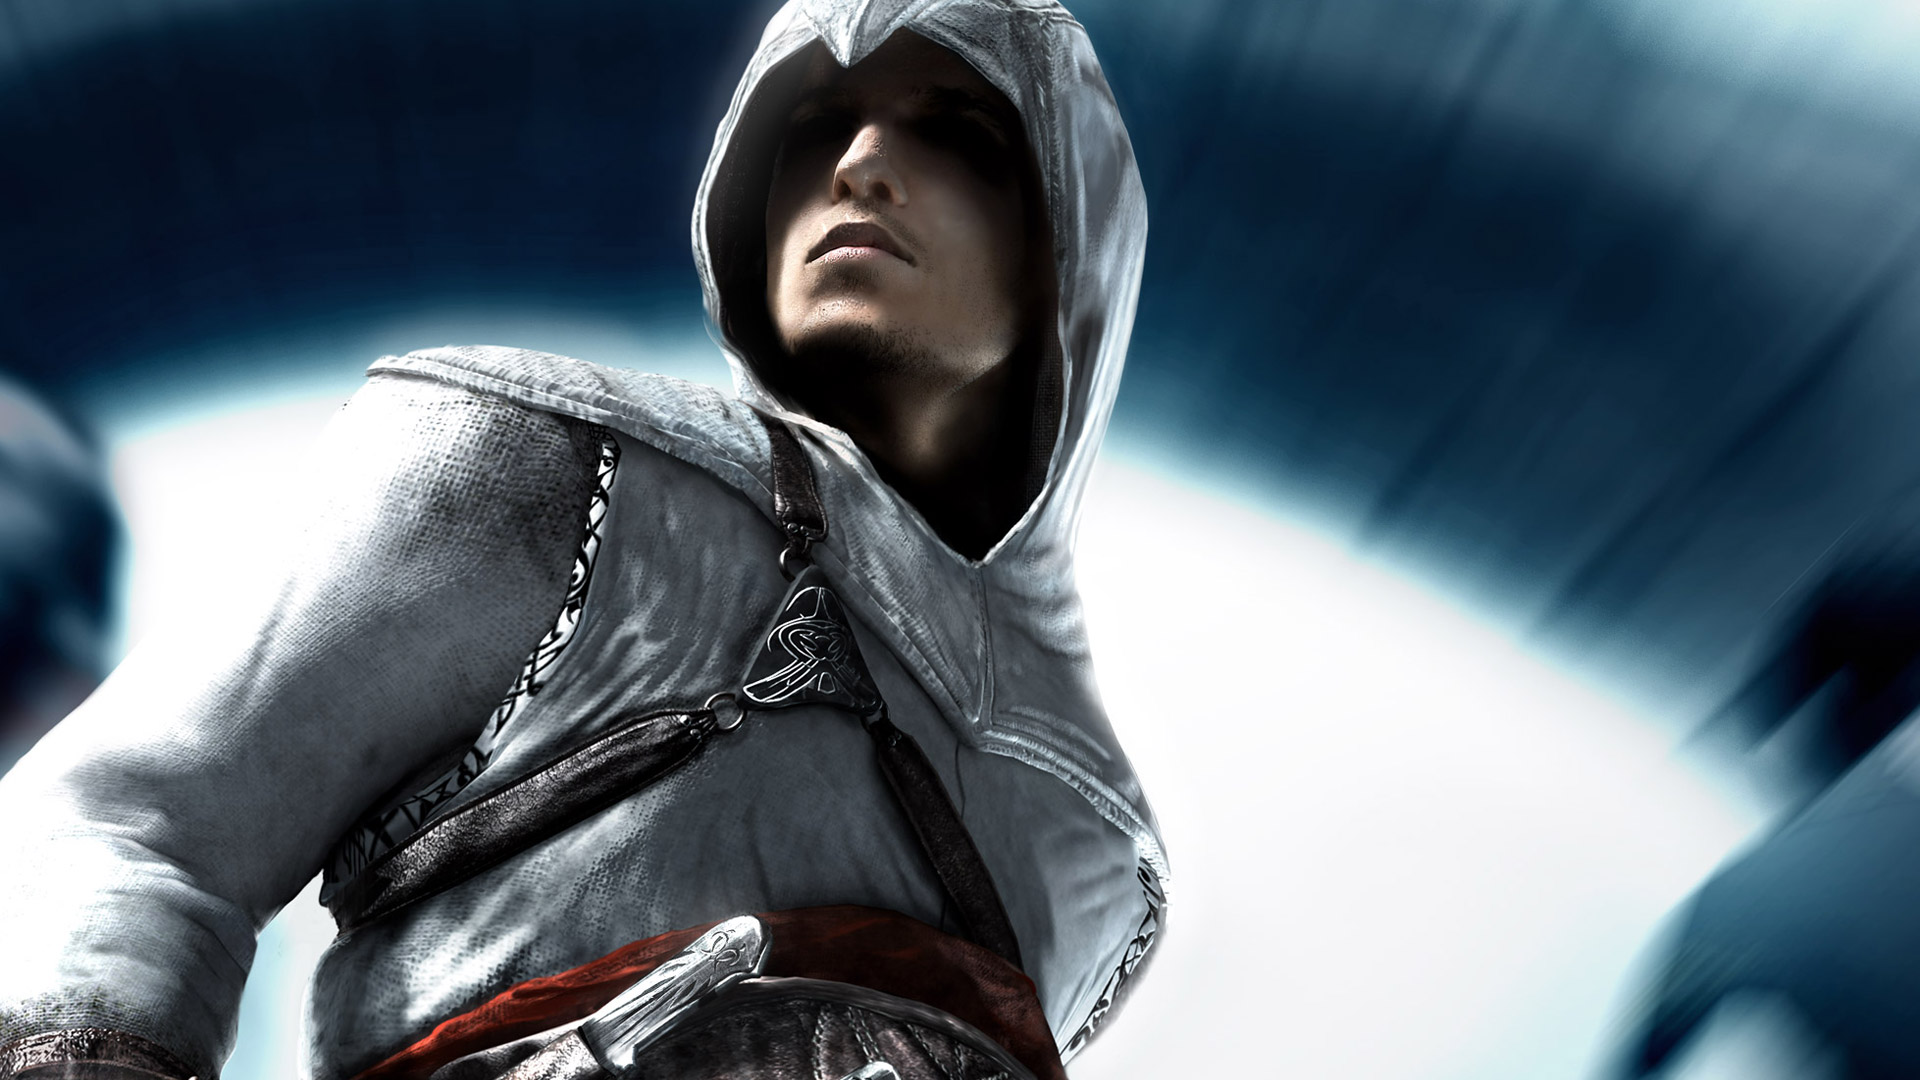 Assassin's Creed Wallpaper in 1920x1080